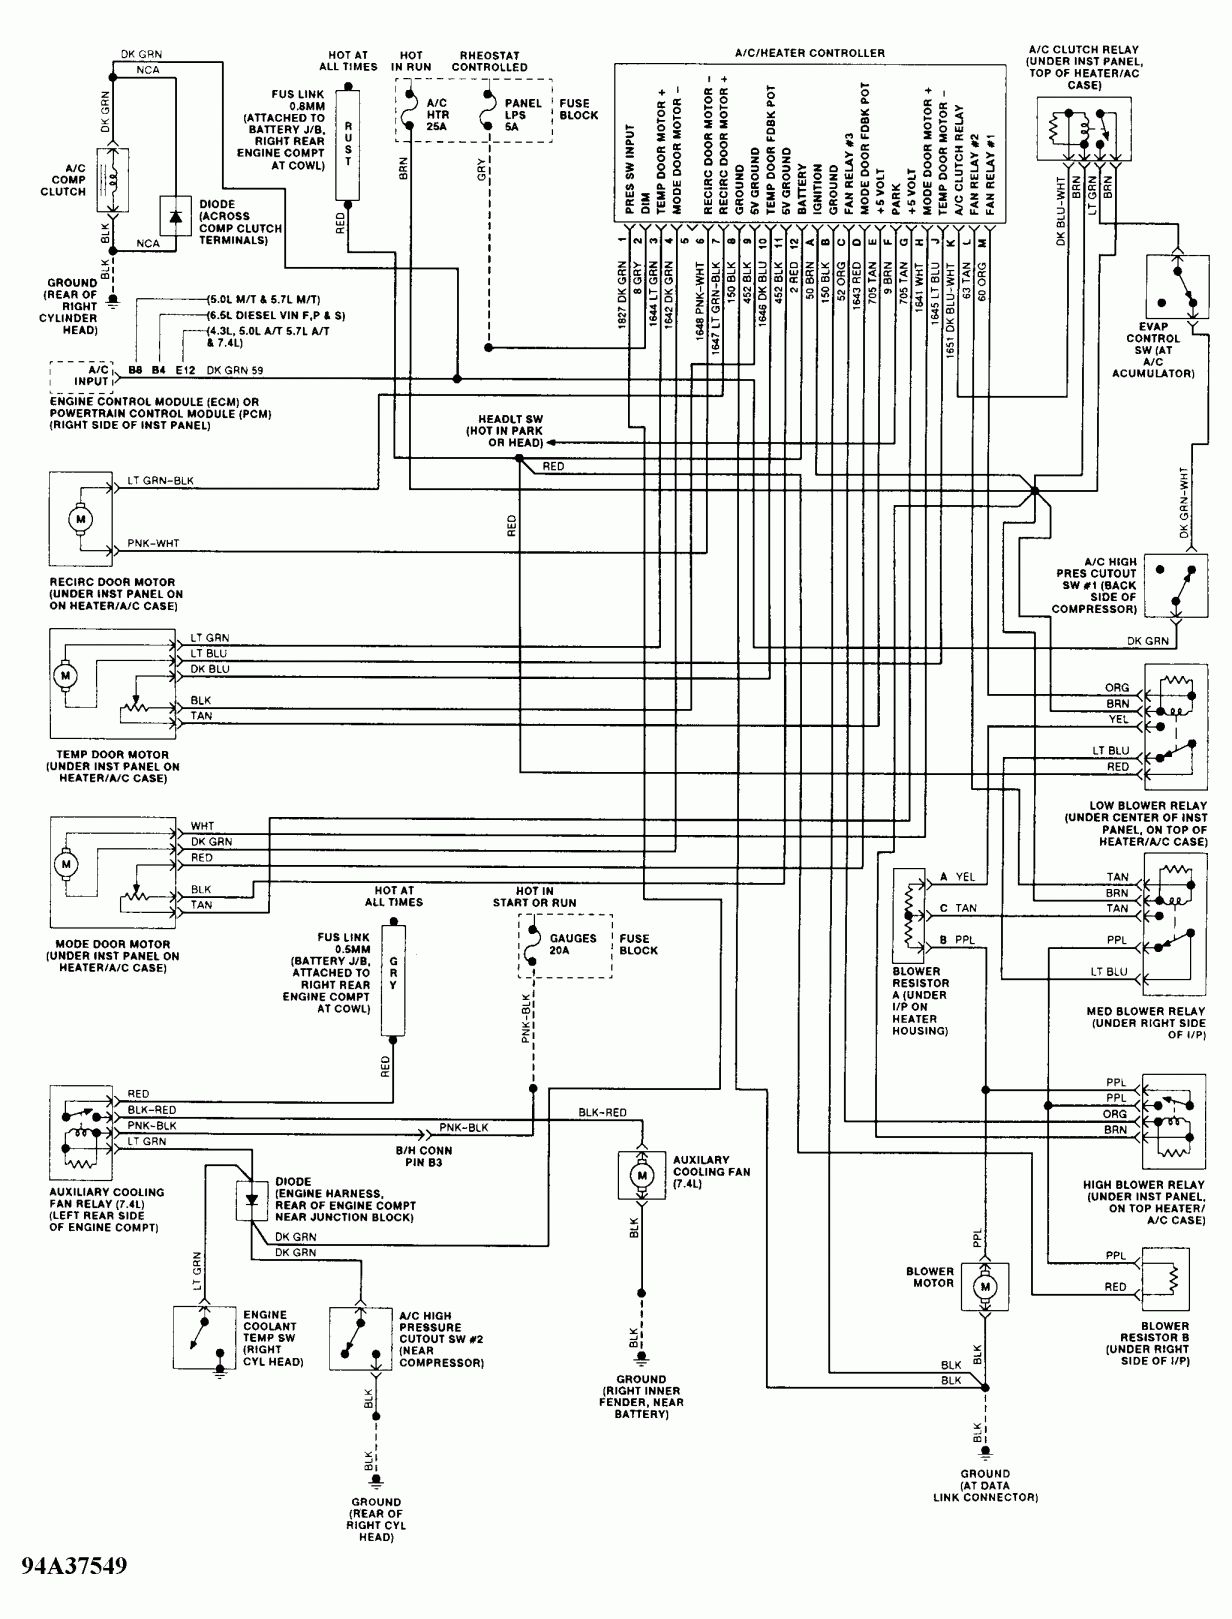 Wiring Diagram For 1990 Chevy Pickup With Deisel Engine And Wrg Chevy Diesel Wiring Diagram Camionero